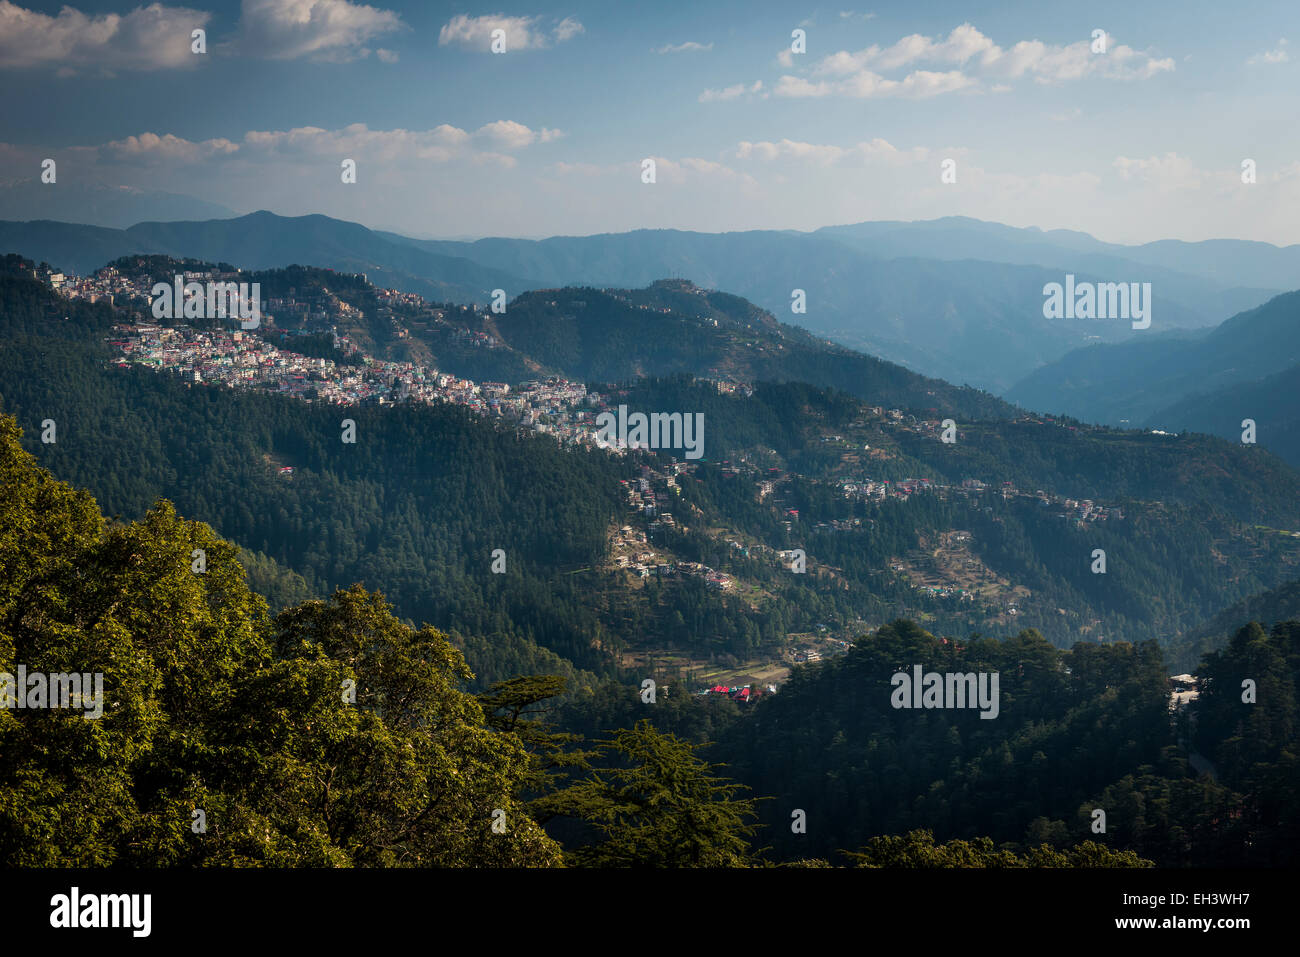 View of the outlying districts of Shimla in the Himalayan foot hills of Himachal Pradesh, India - Stock Image